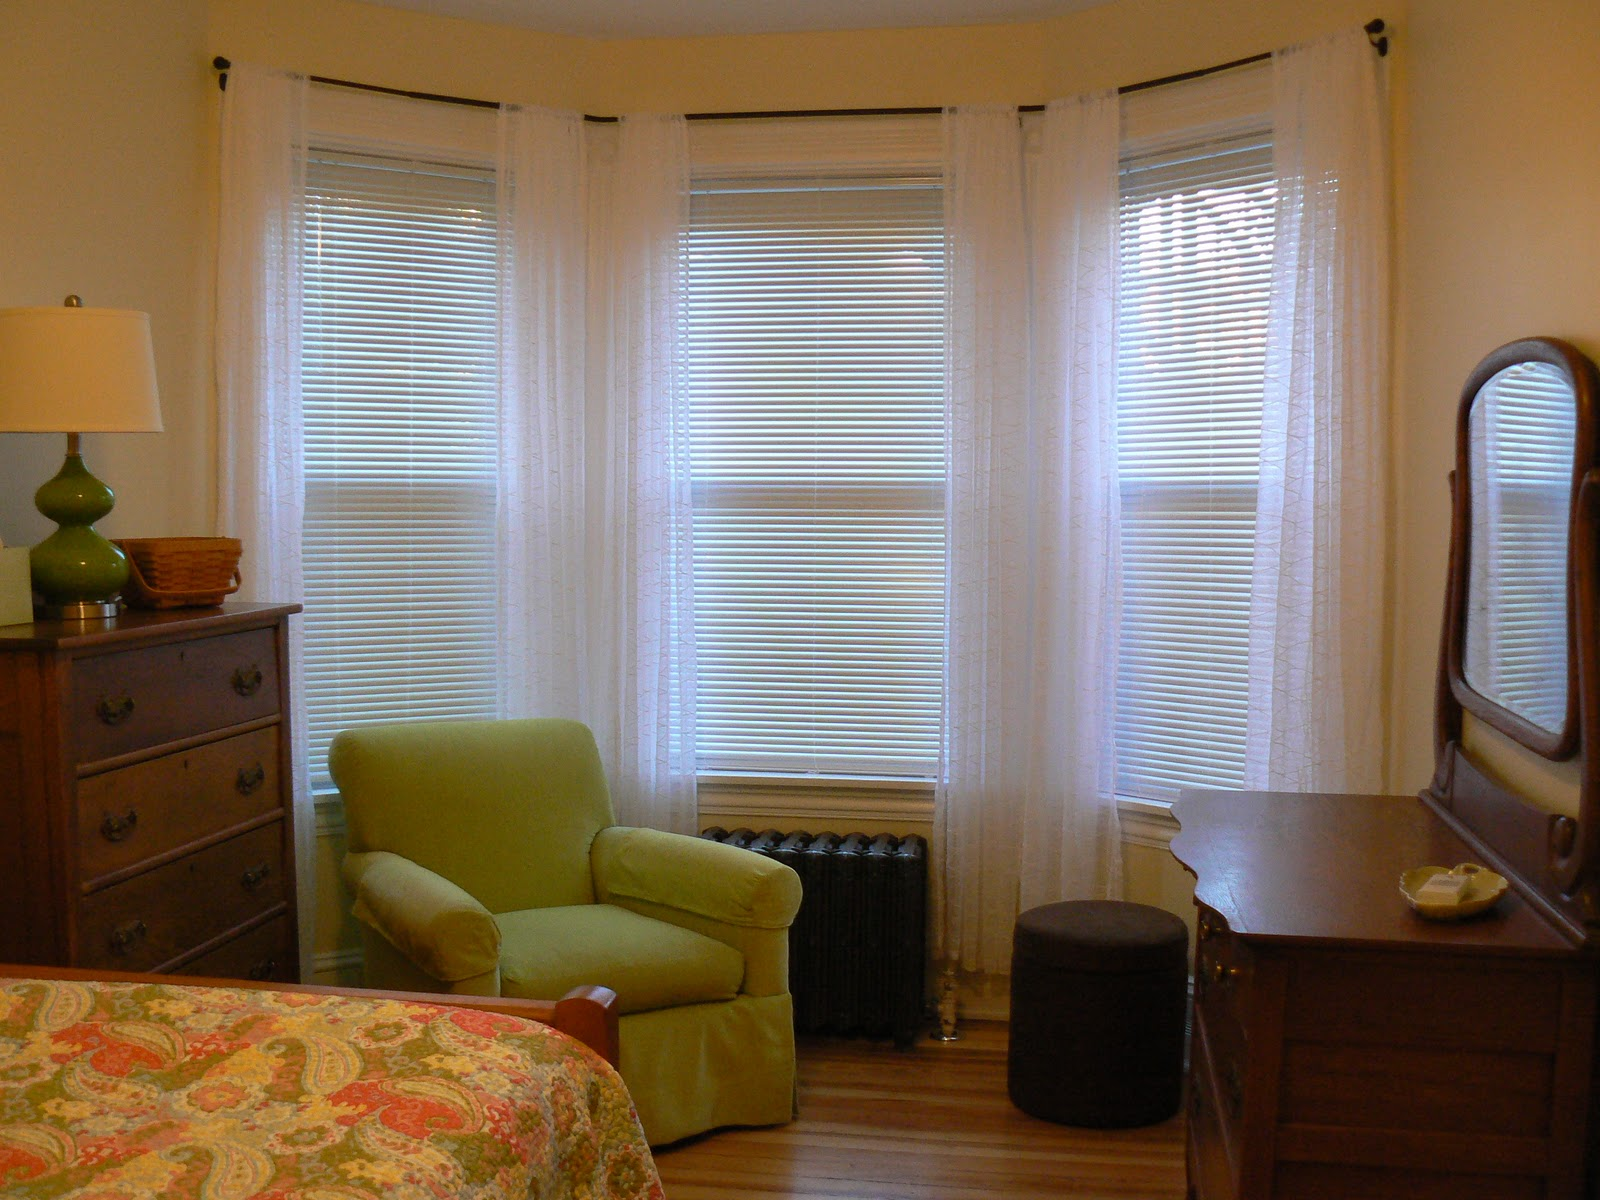 Bedroom Curtains And Shades With Curtain Rods For Bay Windows